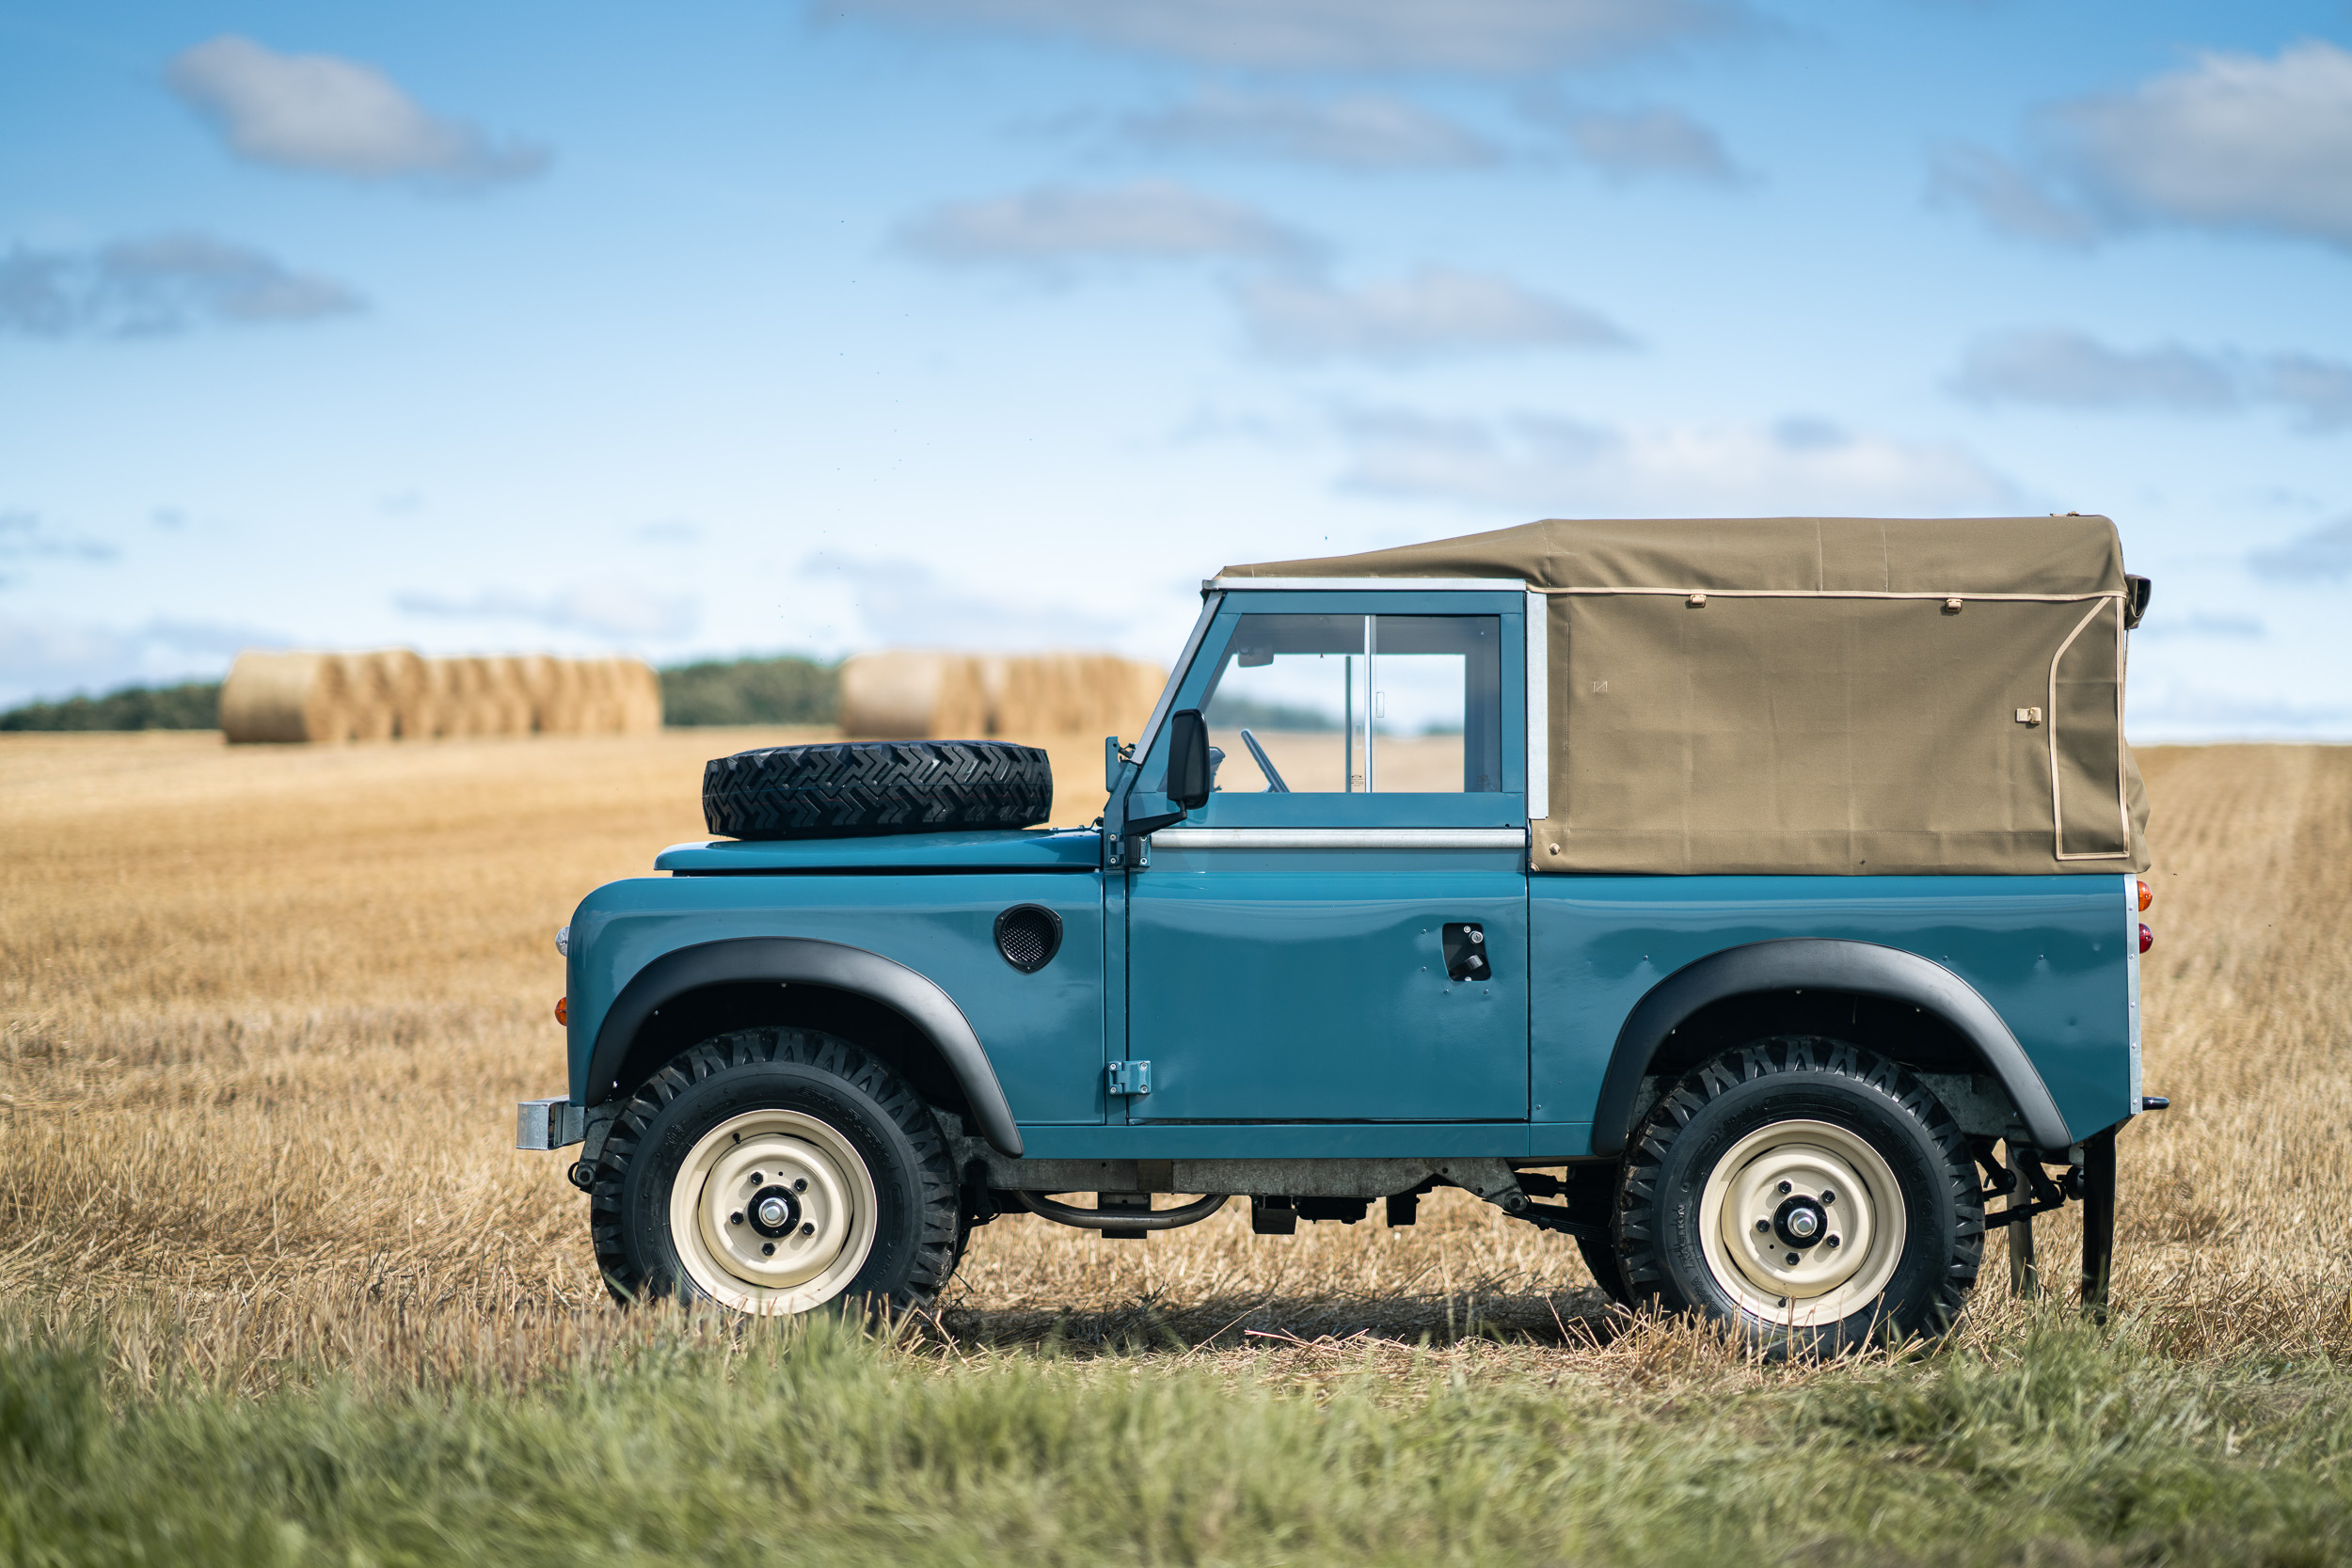 1982 Land Rover side profile